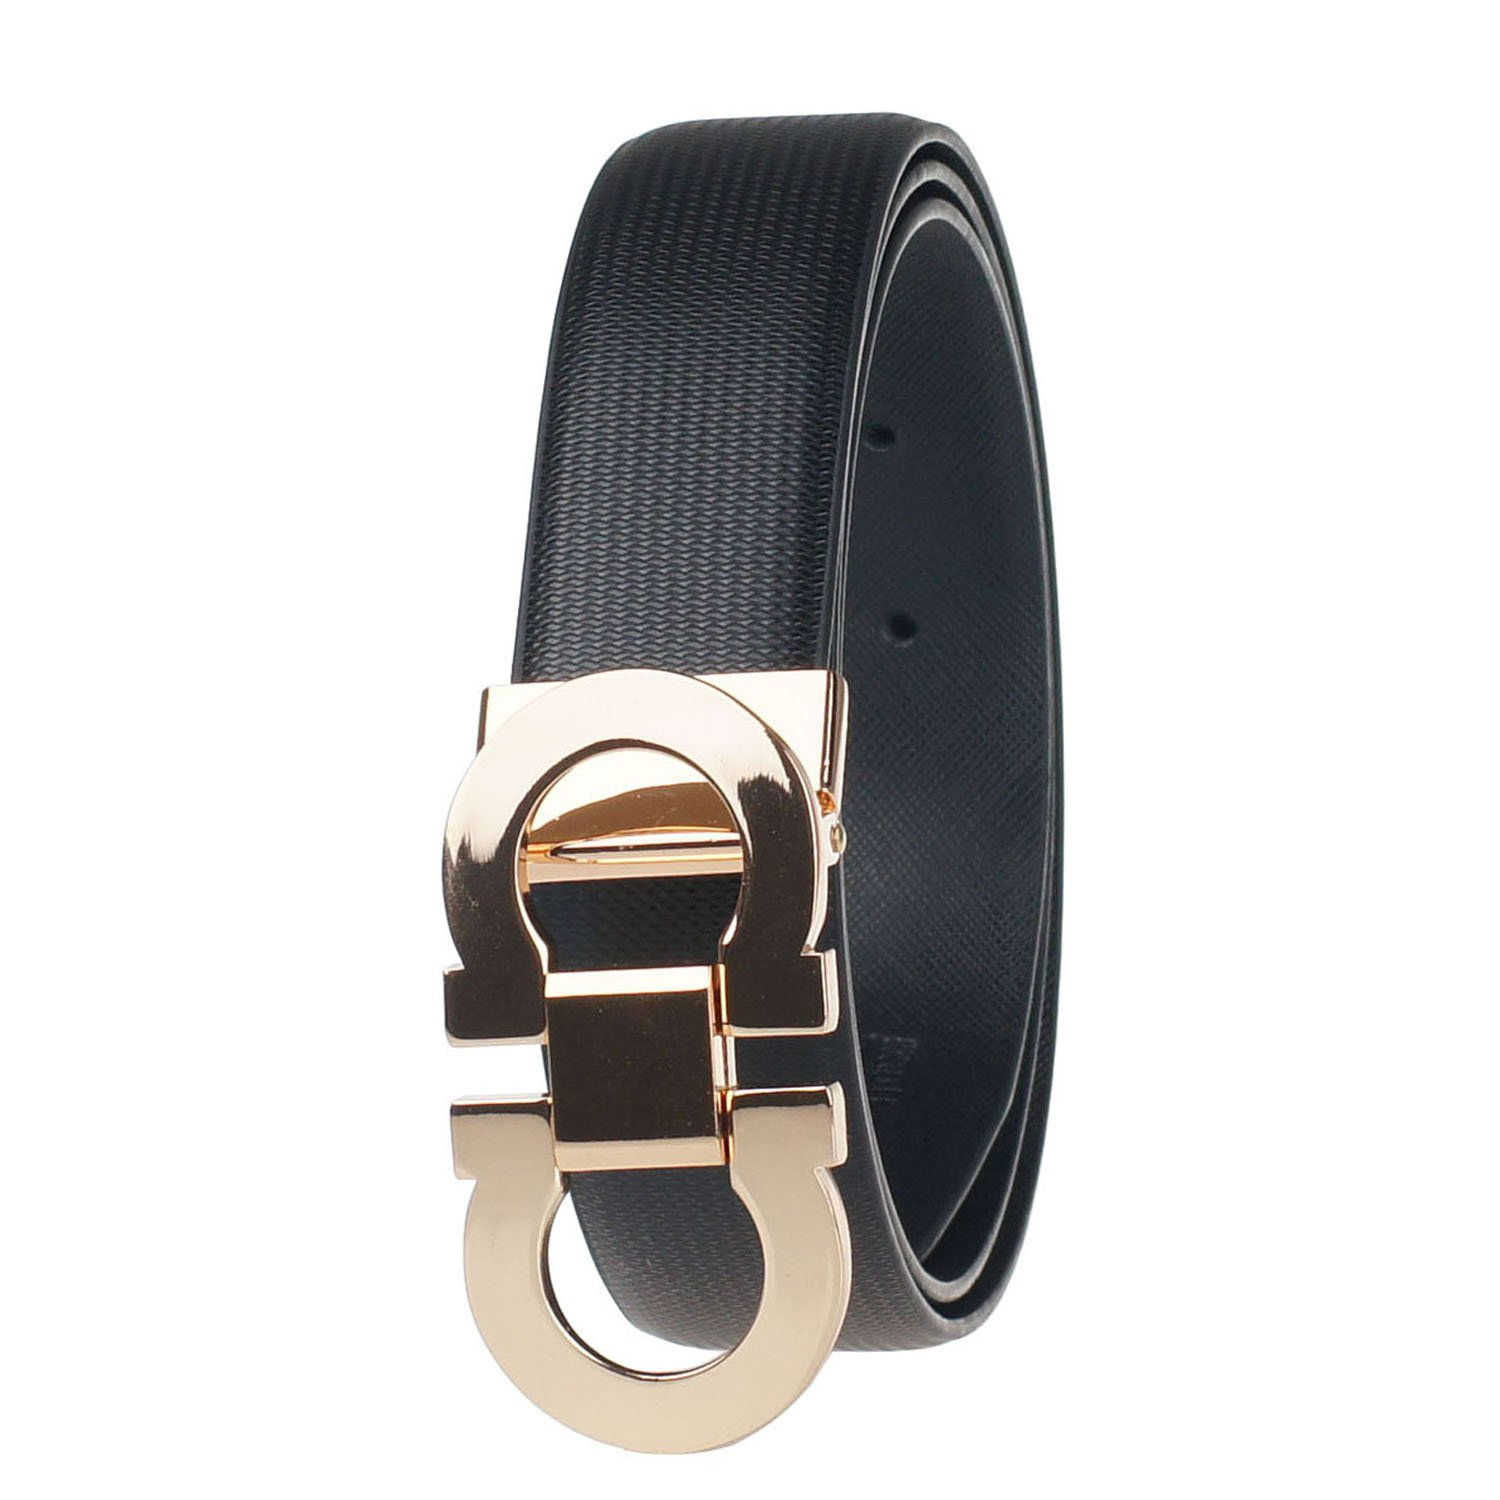 Men's Smooth Leather Buckle Belt 35mm Leather up to 40inch (120cm) Black-Black